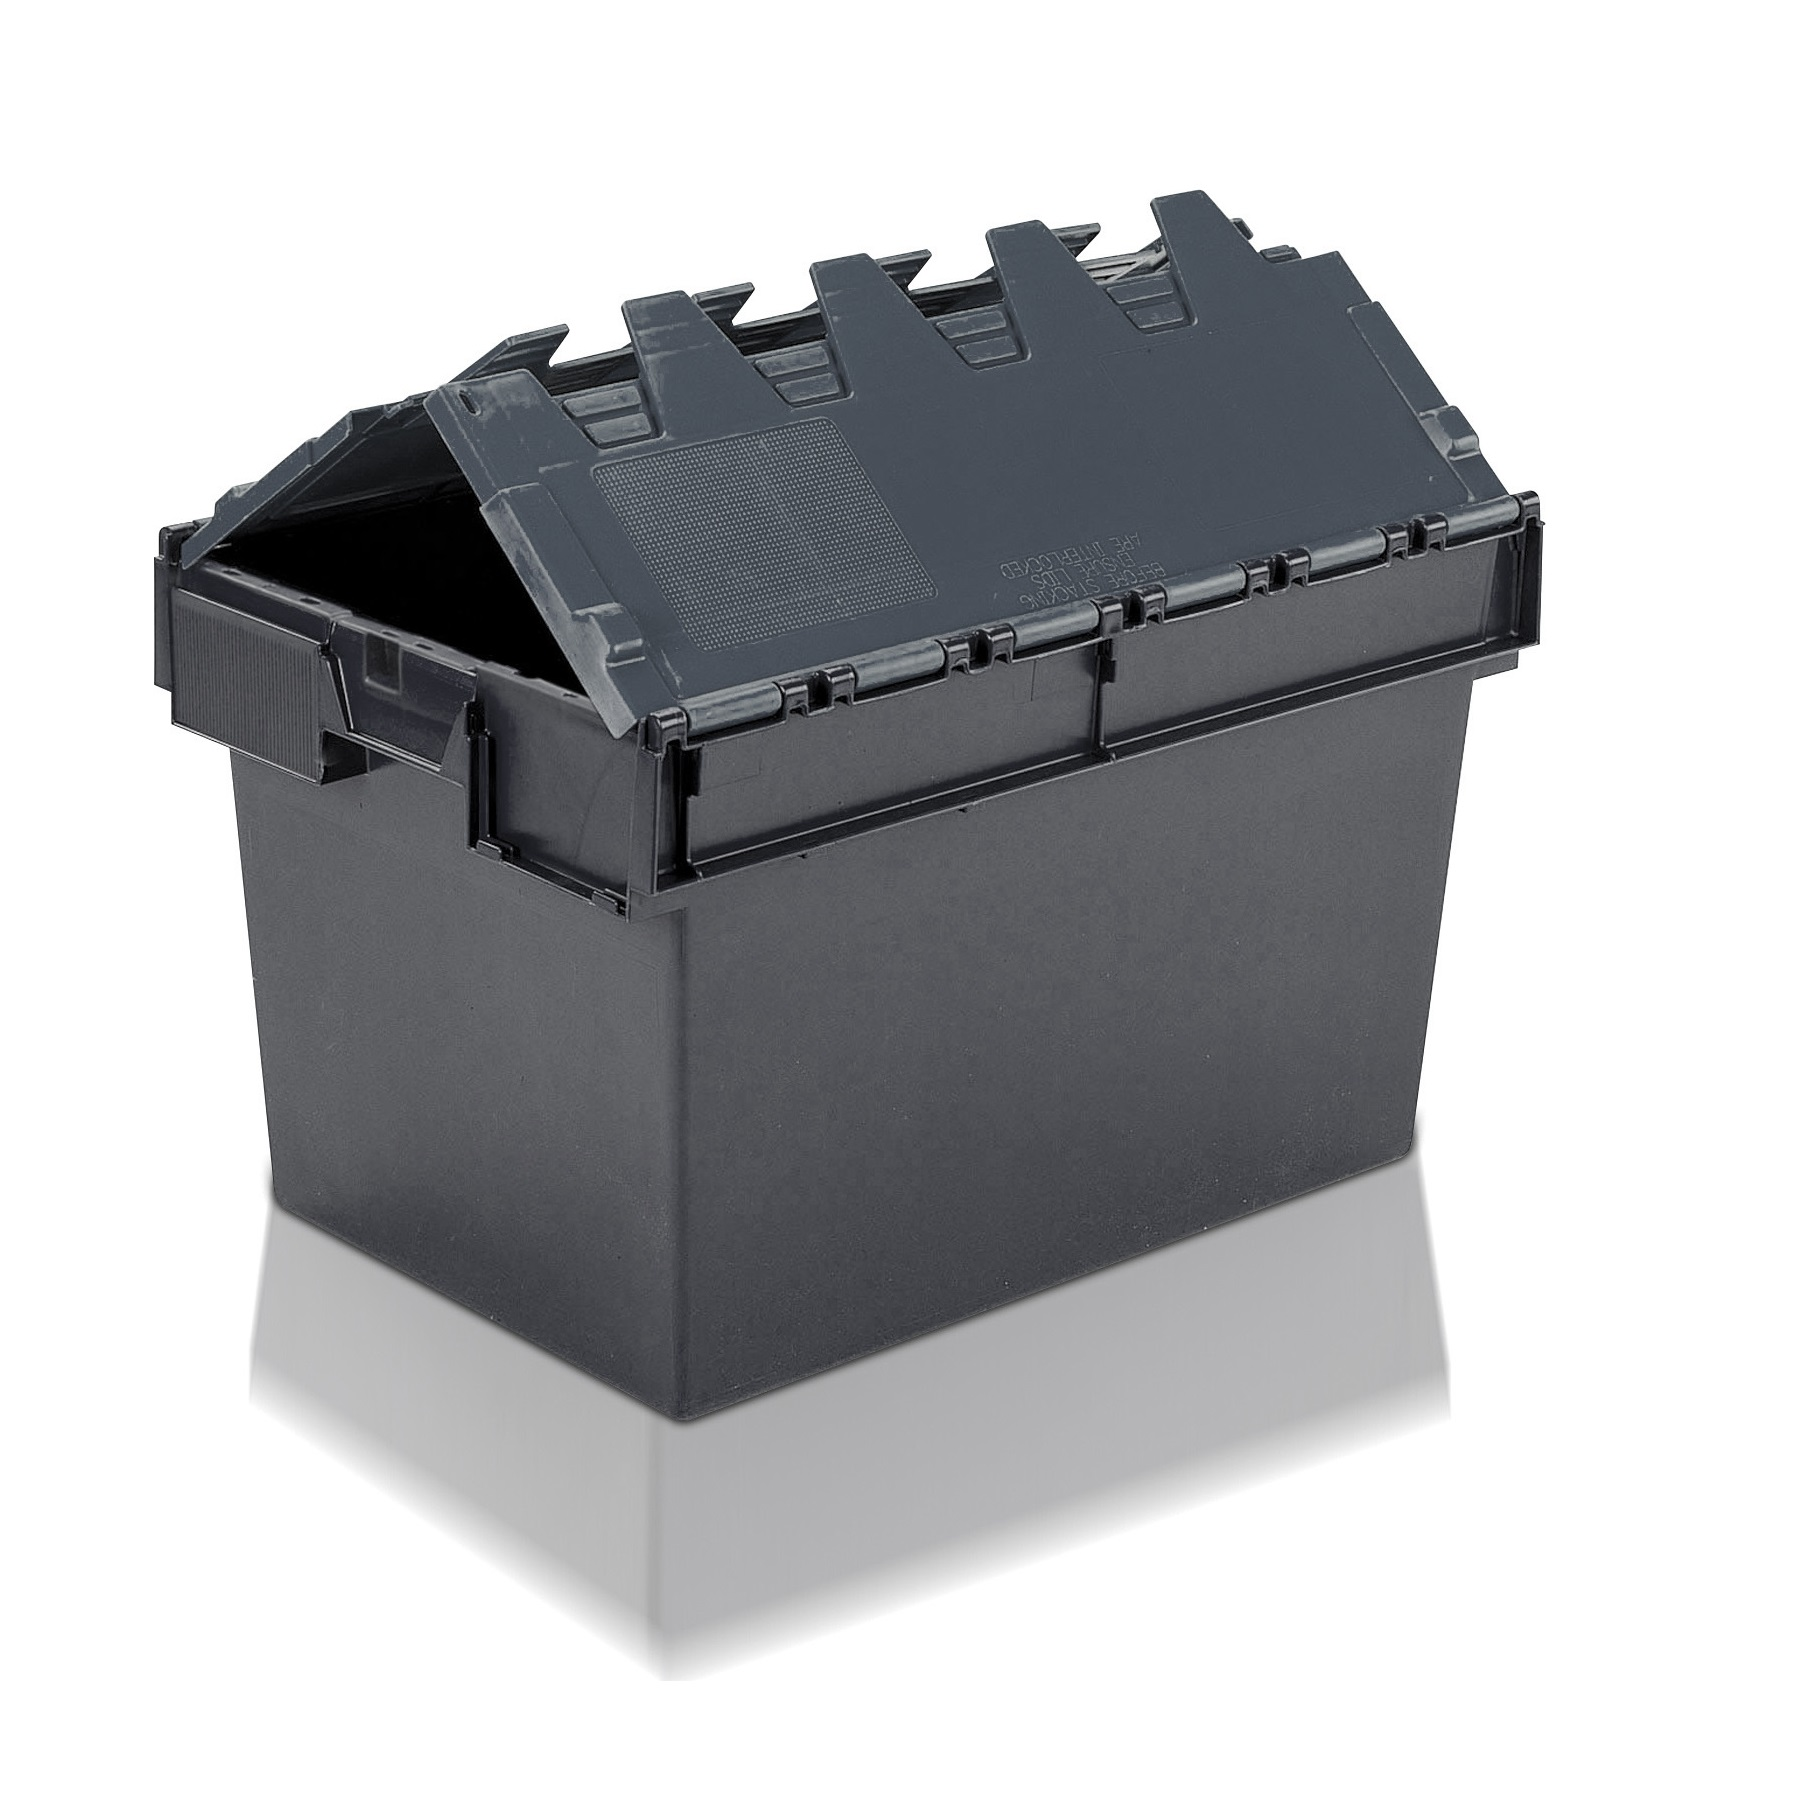 tote box - attached lid contianer - 64l (600 x 400 x 365h mm)